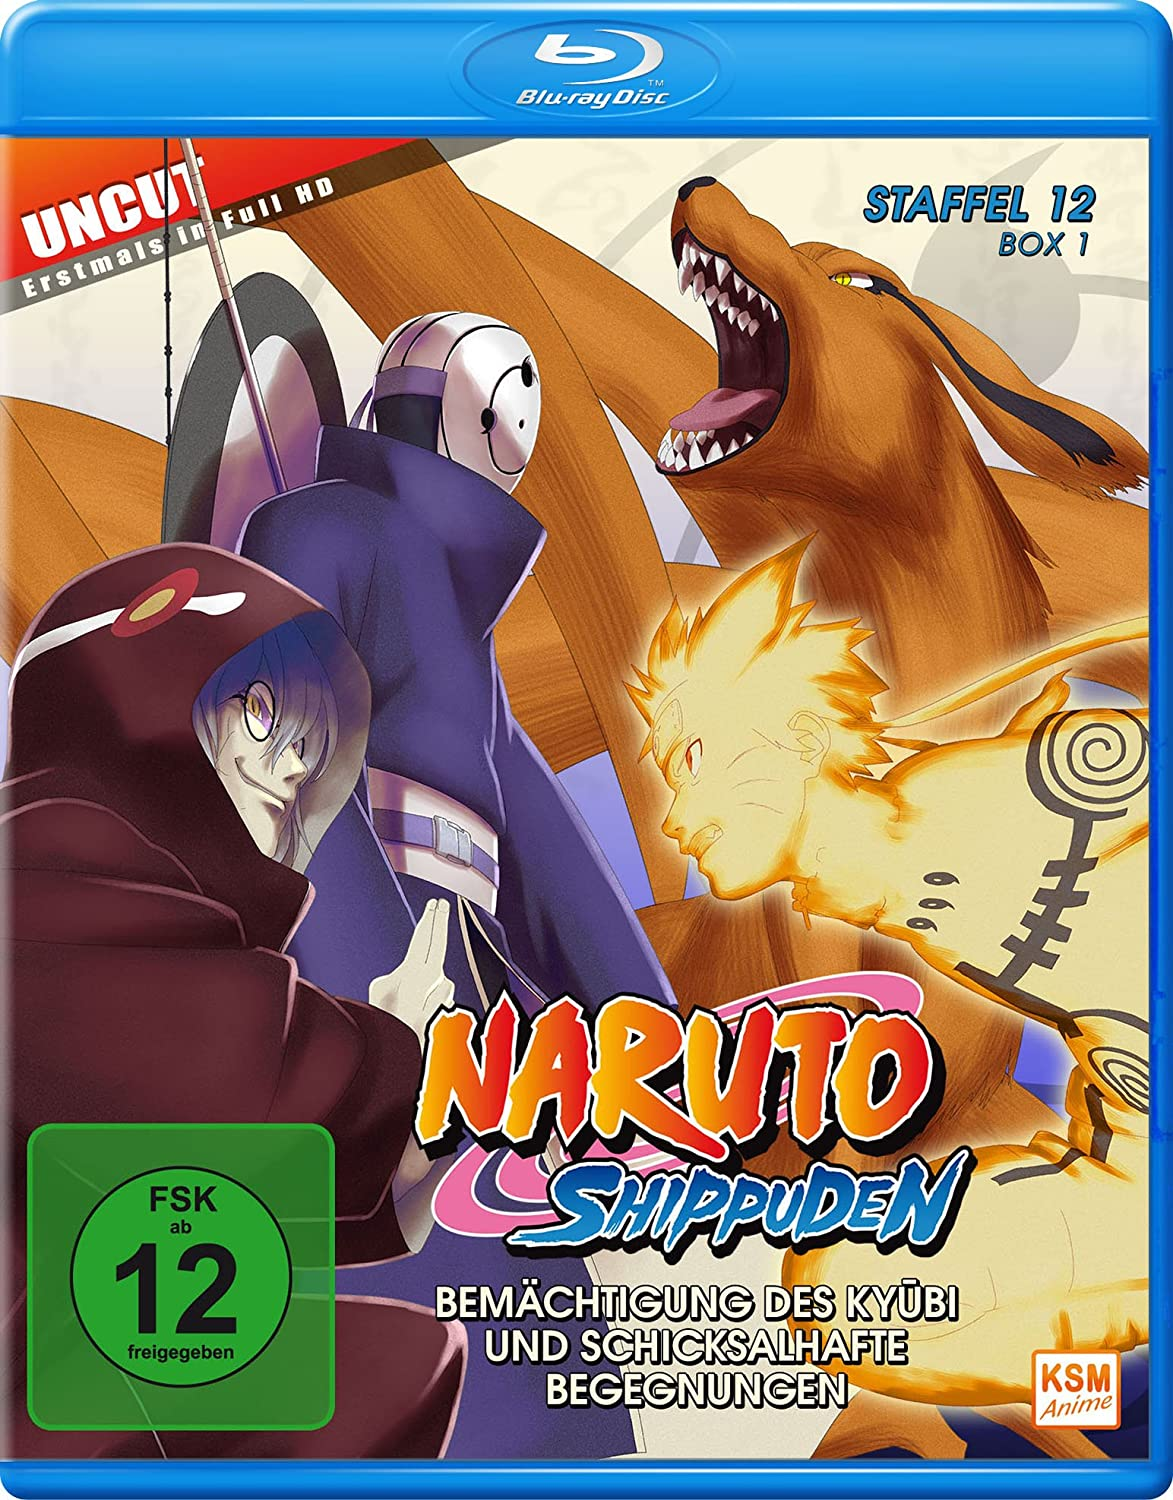 Naruto Shippuden - Staffel 12 - Box 1 Episoden 463-480 ...